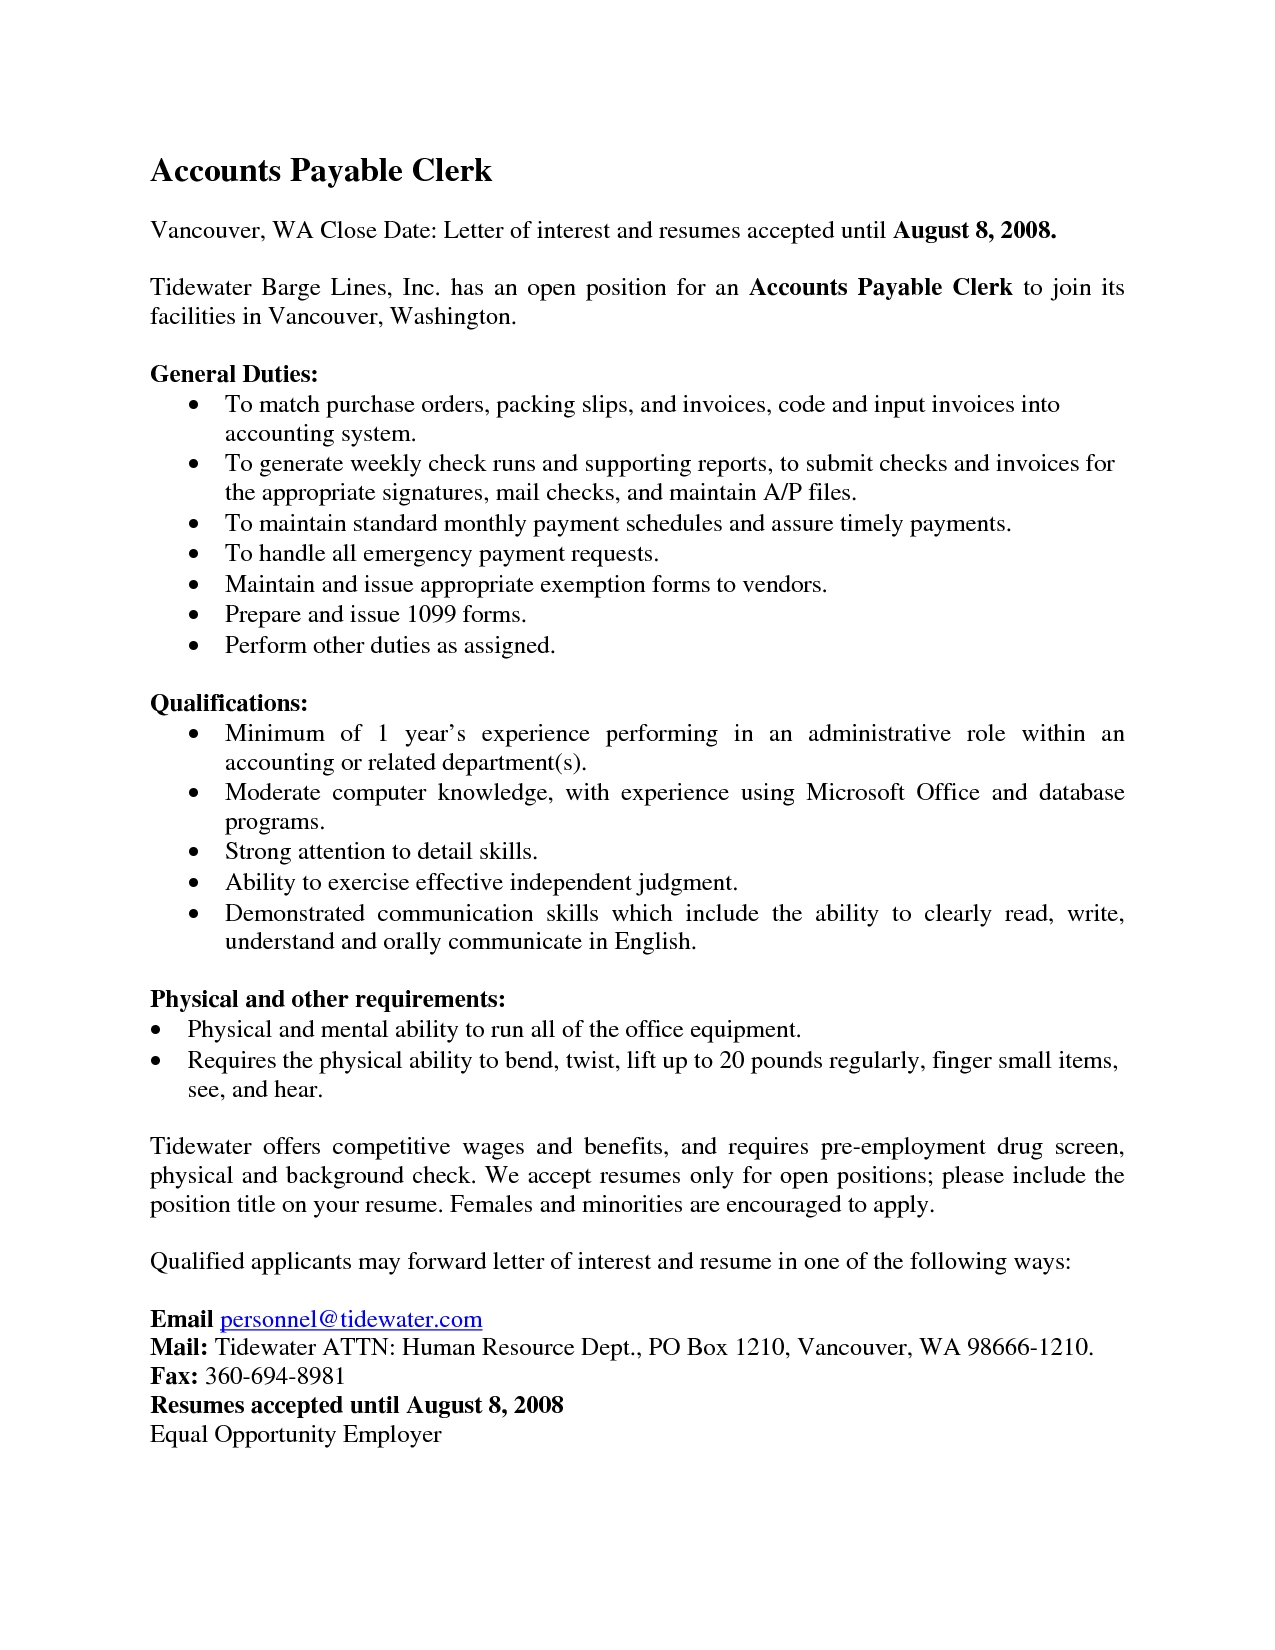 accounting experience description in resume invoice clerk duties